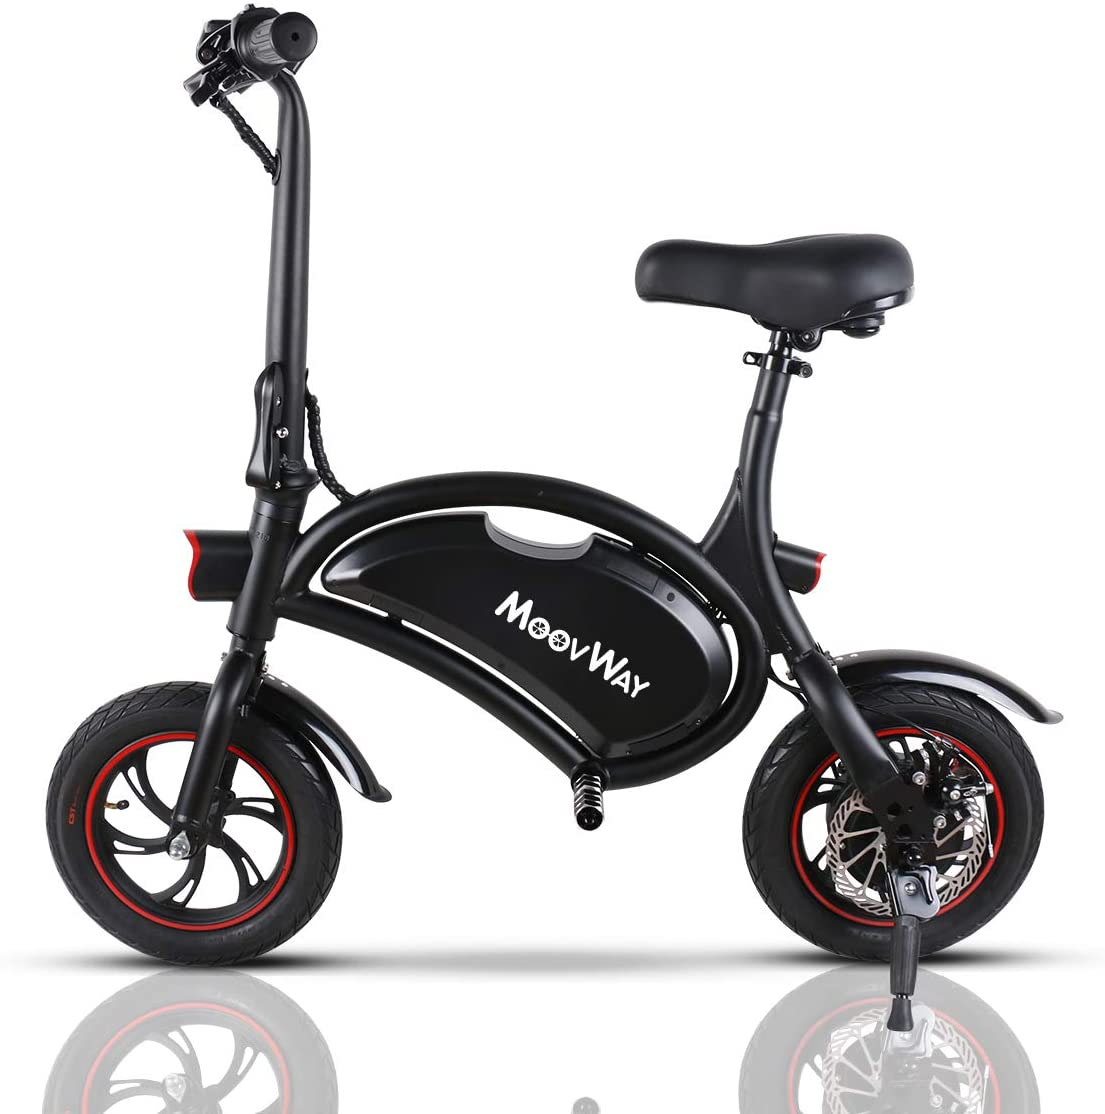 Windgoo Folding Compact Electric Scooter